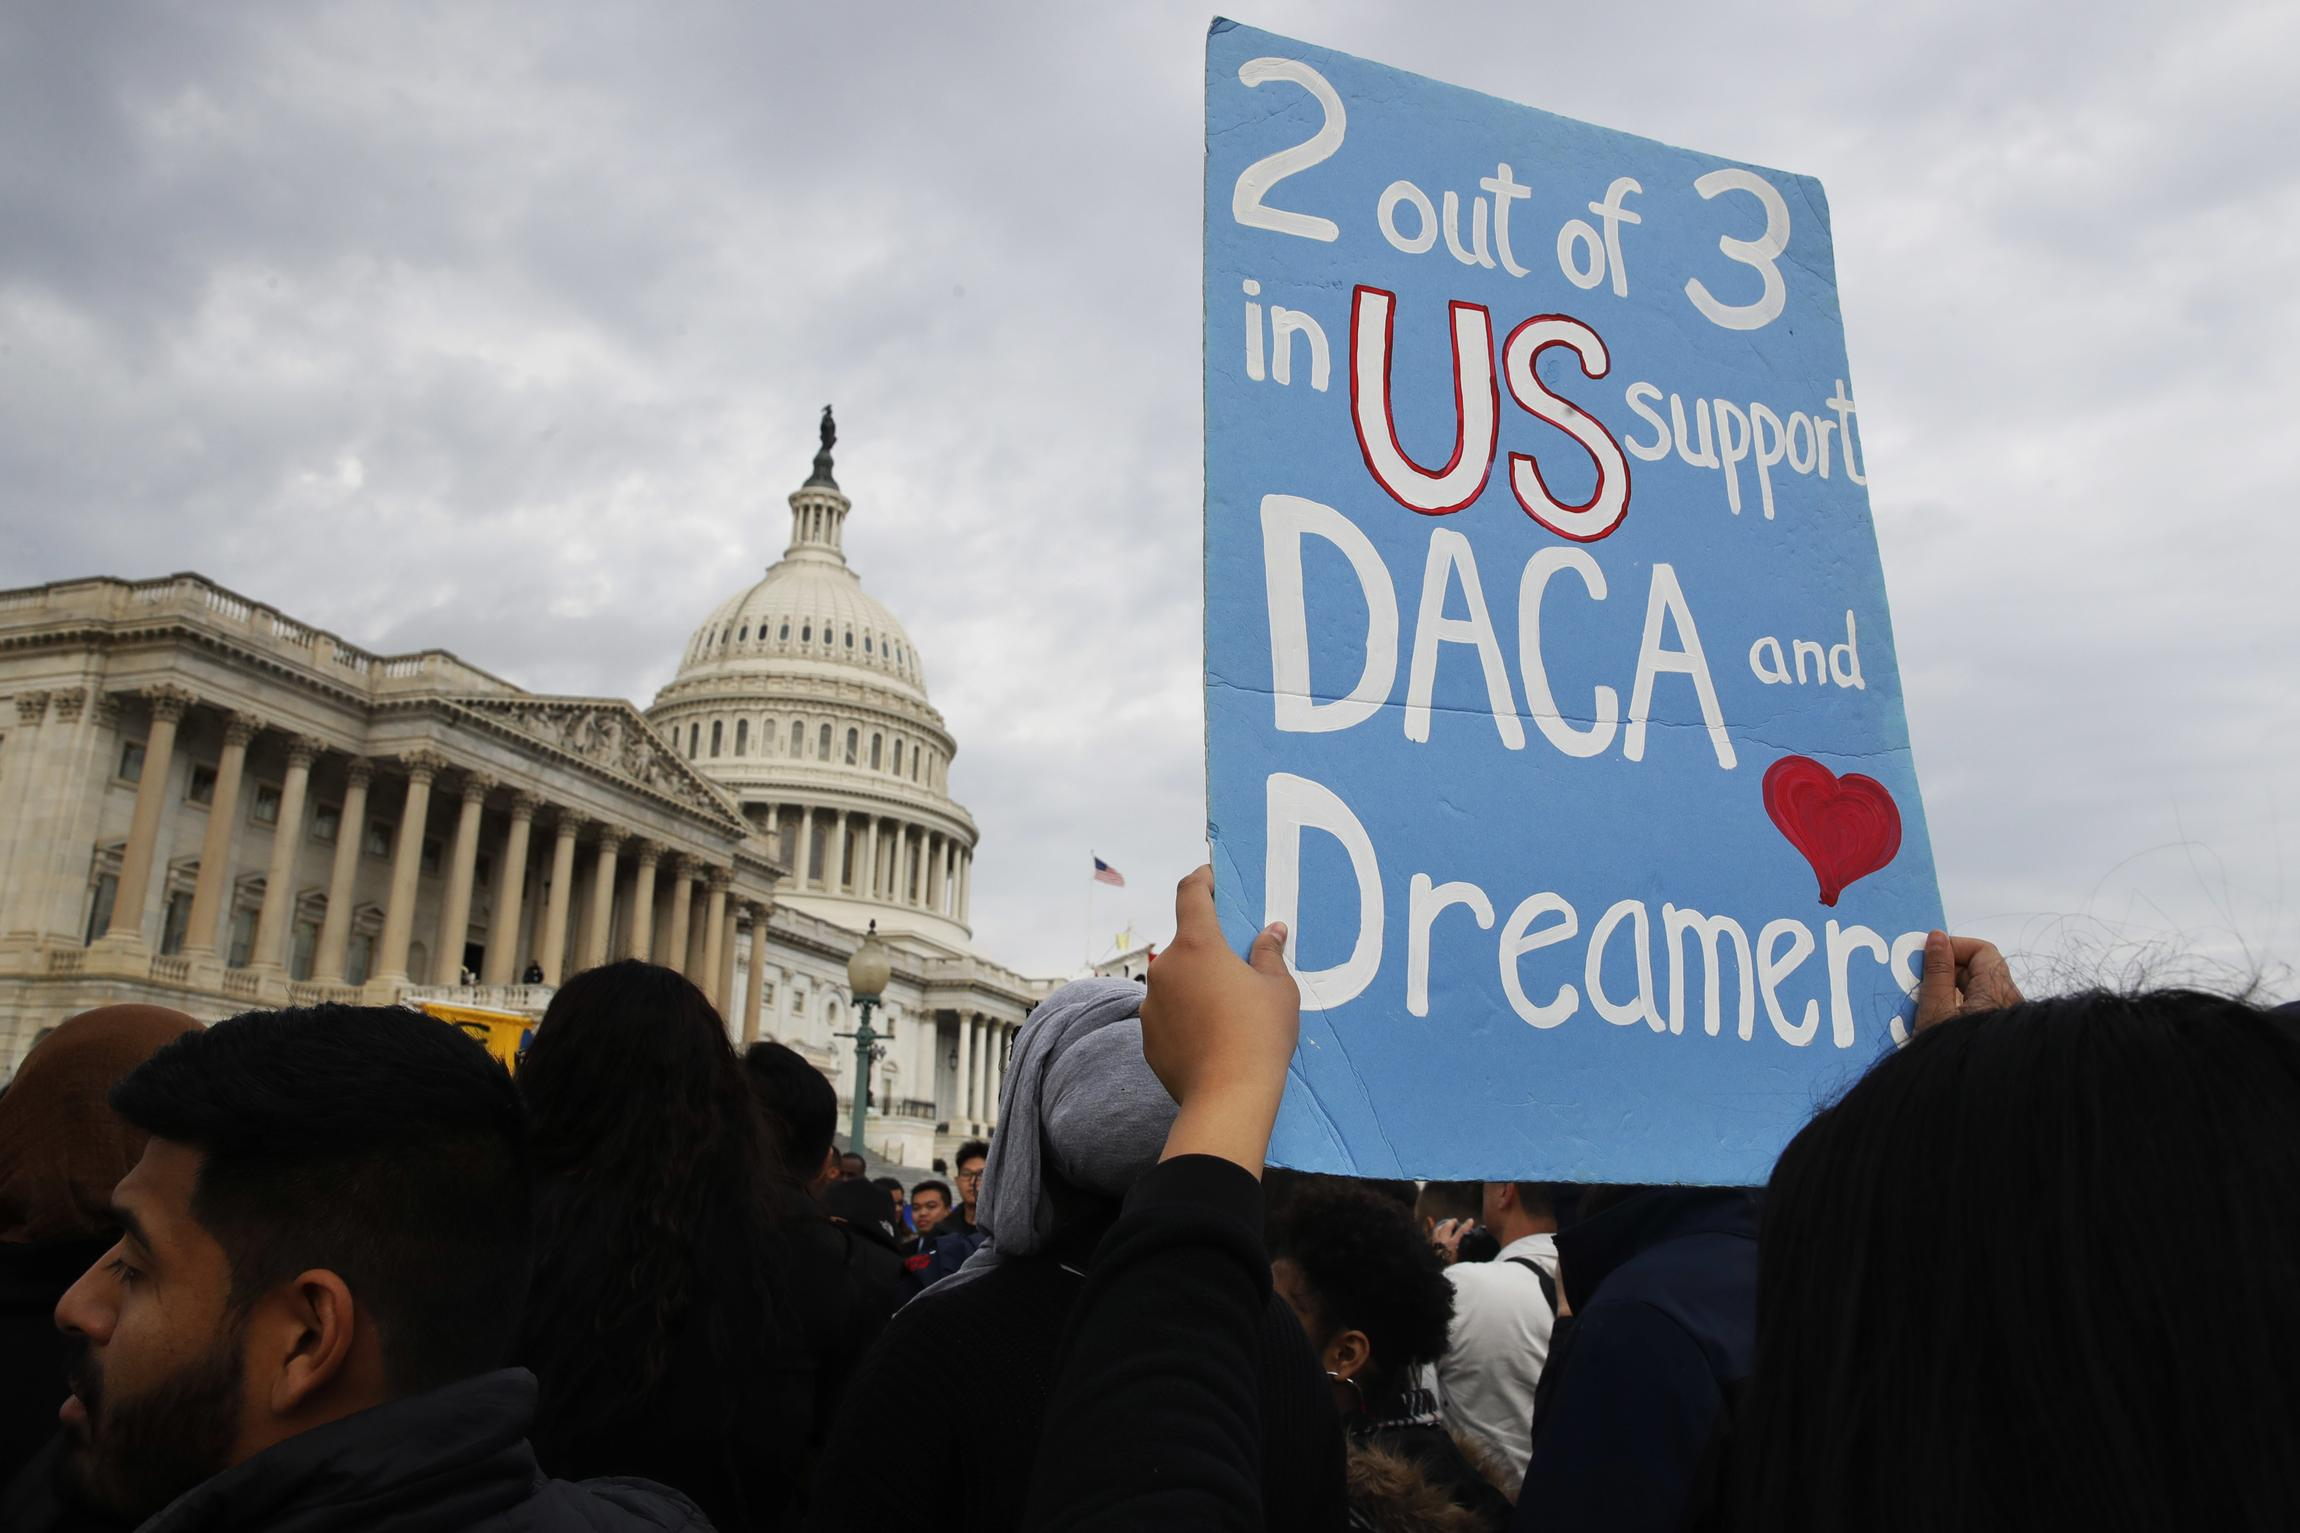 Three of the Many Big Reasons to Love Immigrants